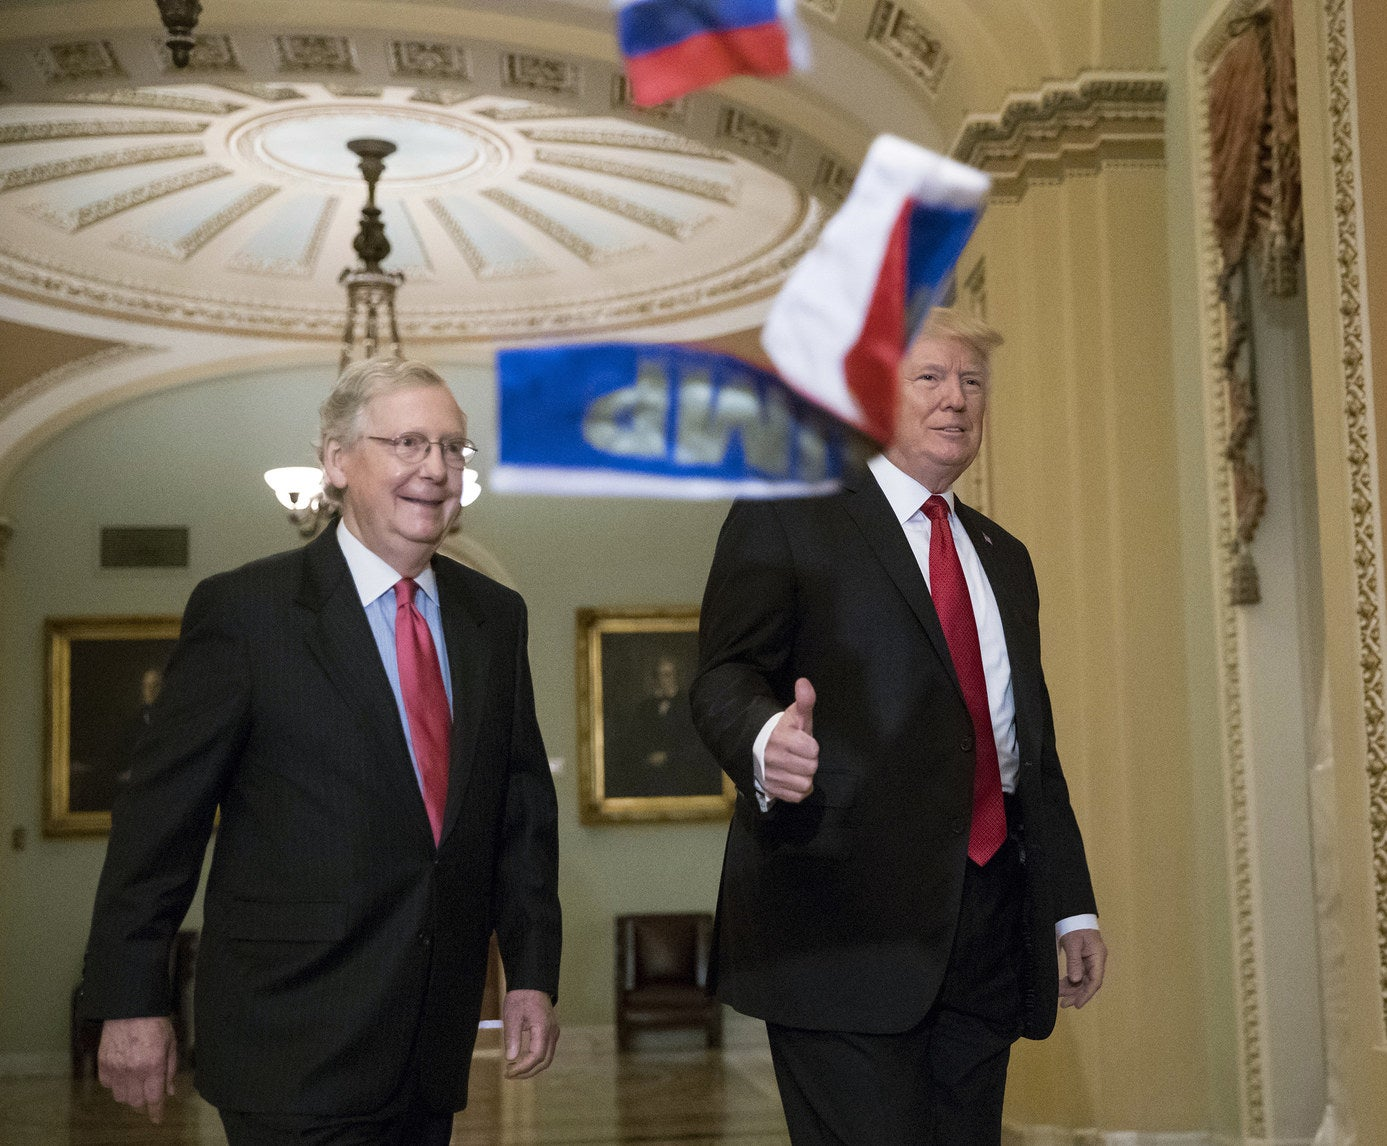 Protesters throw small Russian flags at President Trump and Sen. Majority Leader Mitch McConnell on Capitol Hill, Oct. 24.